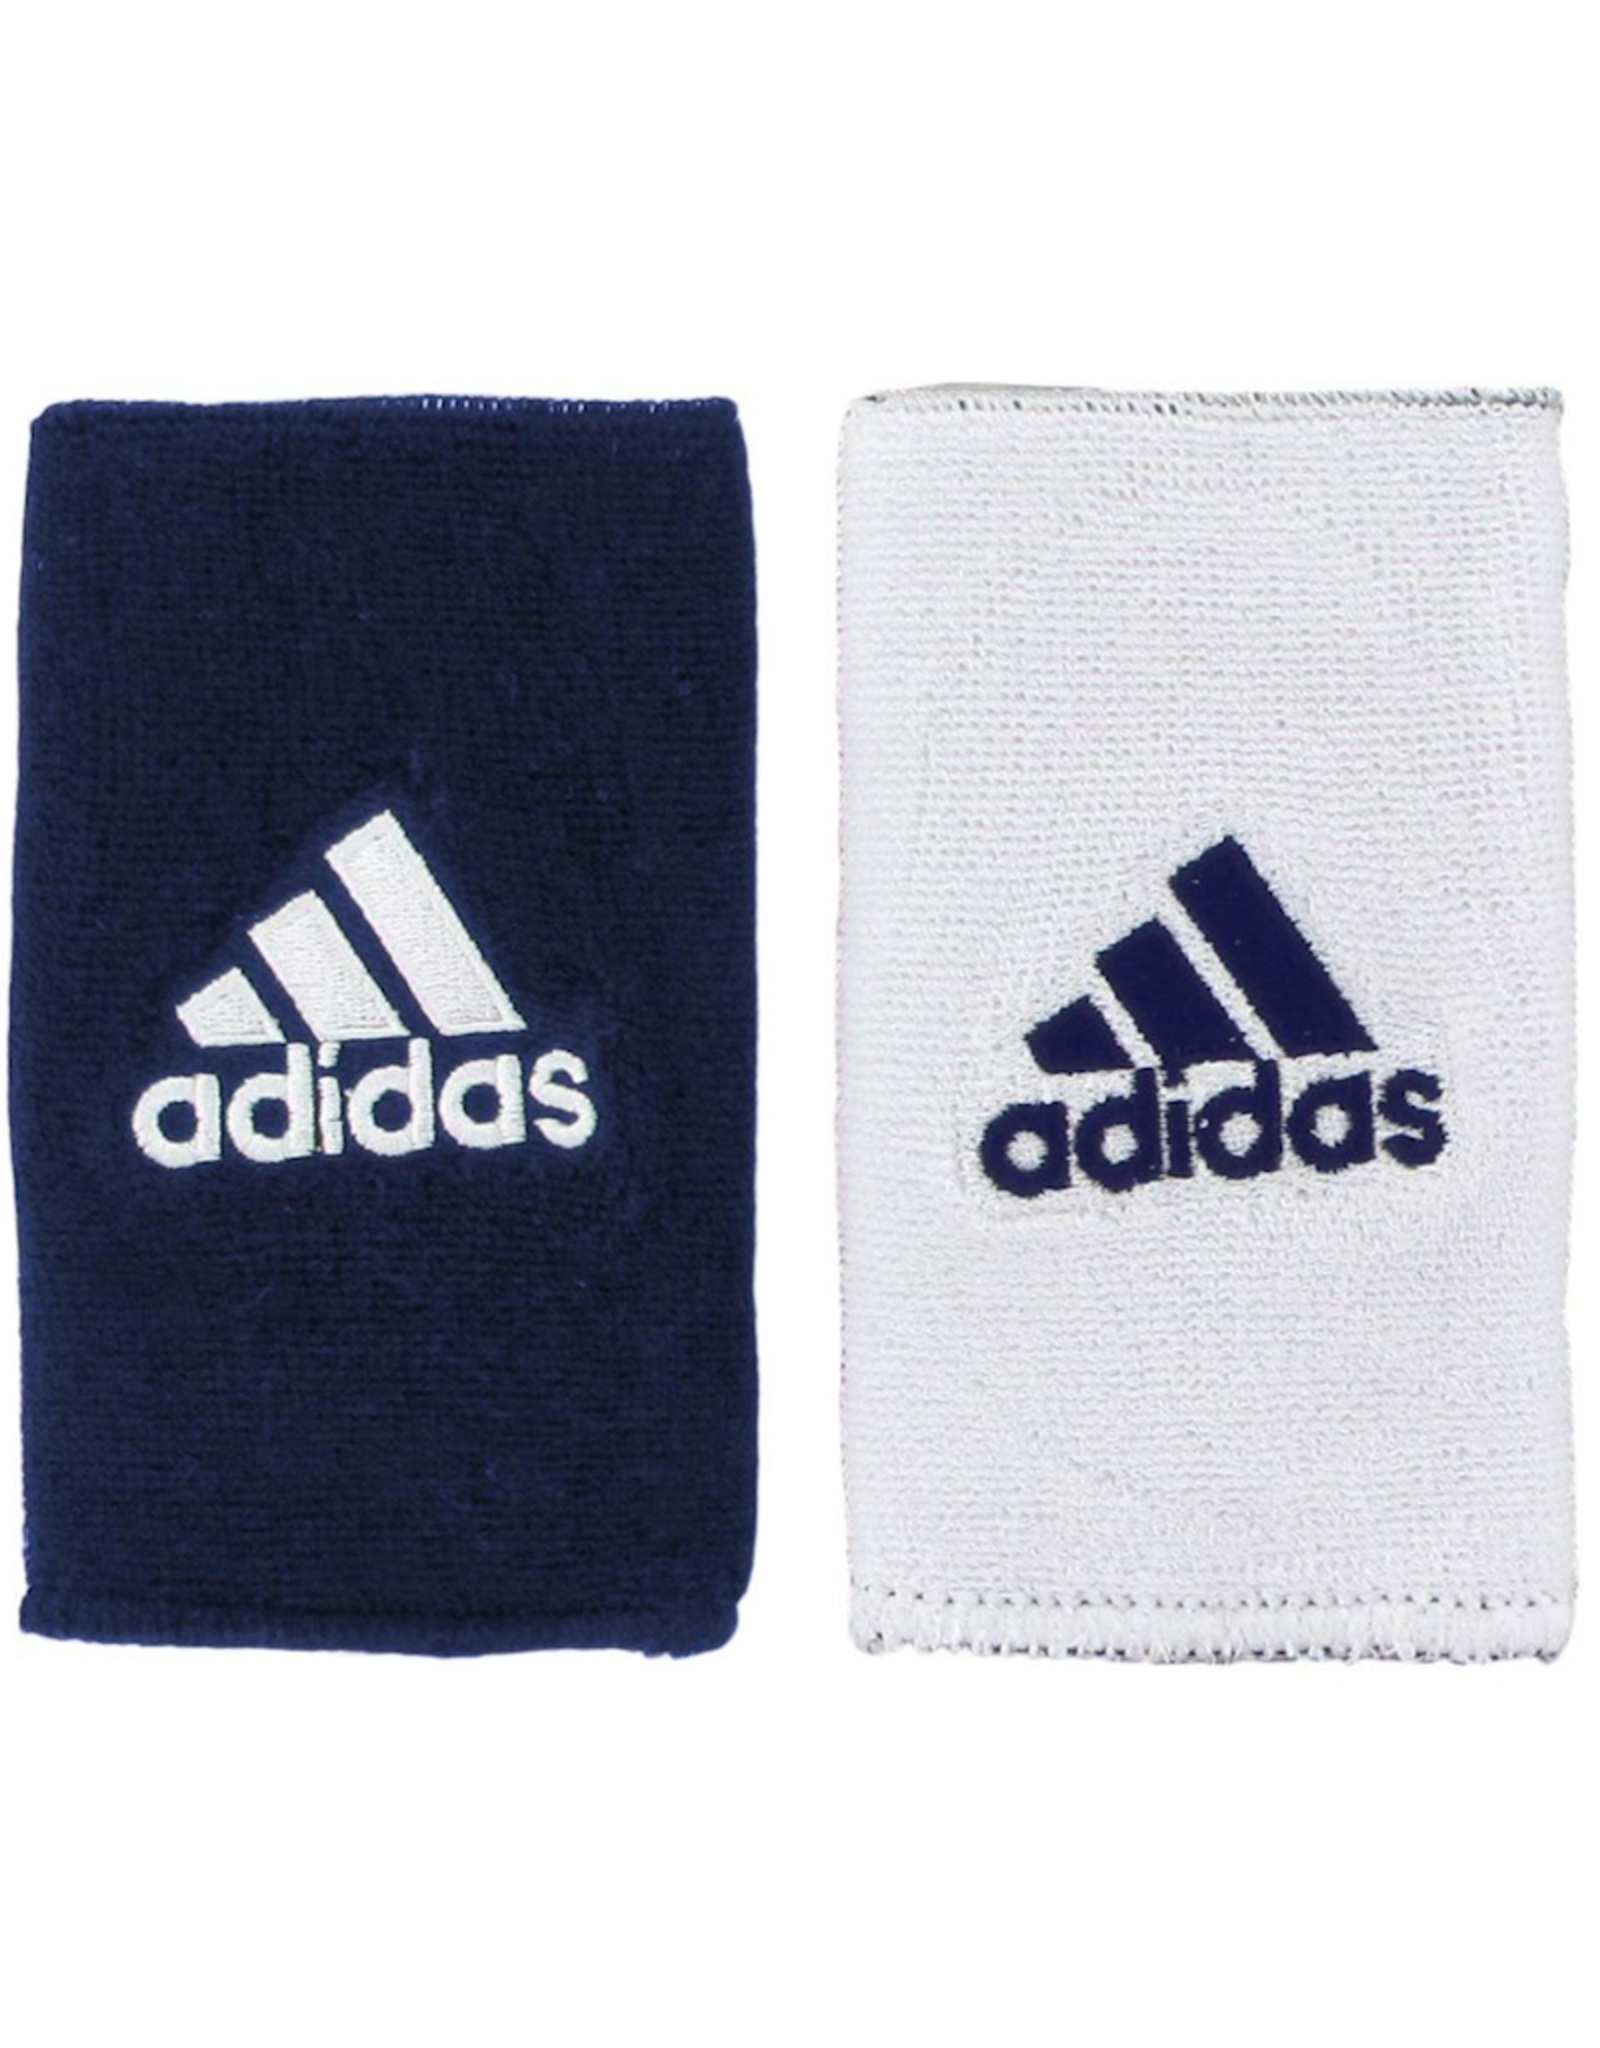 ADIDAS DOUBLE WIDE INTERVAL REVERSIBLE WRISTBAND NAVY/WHITE